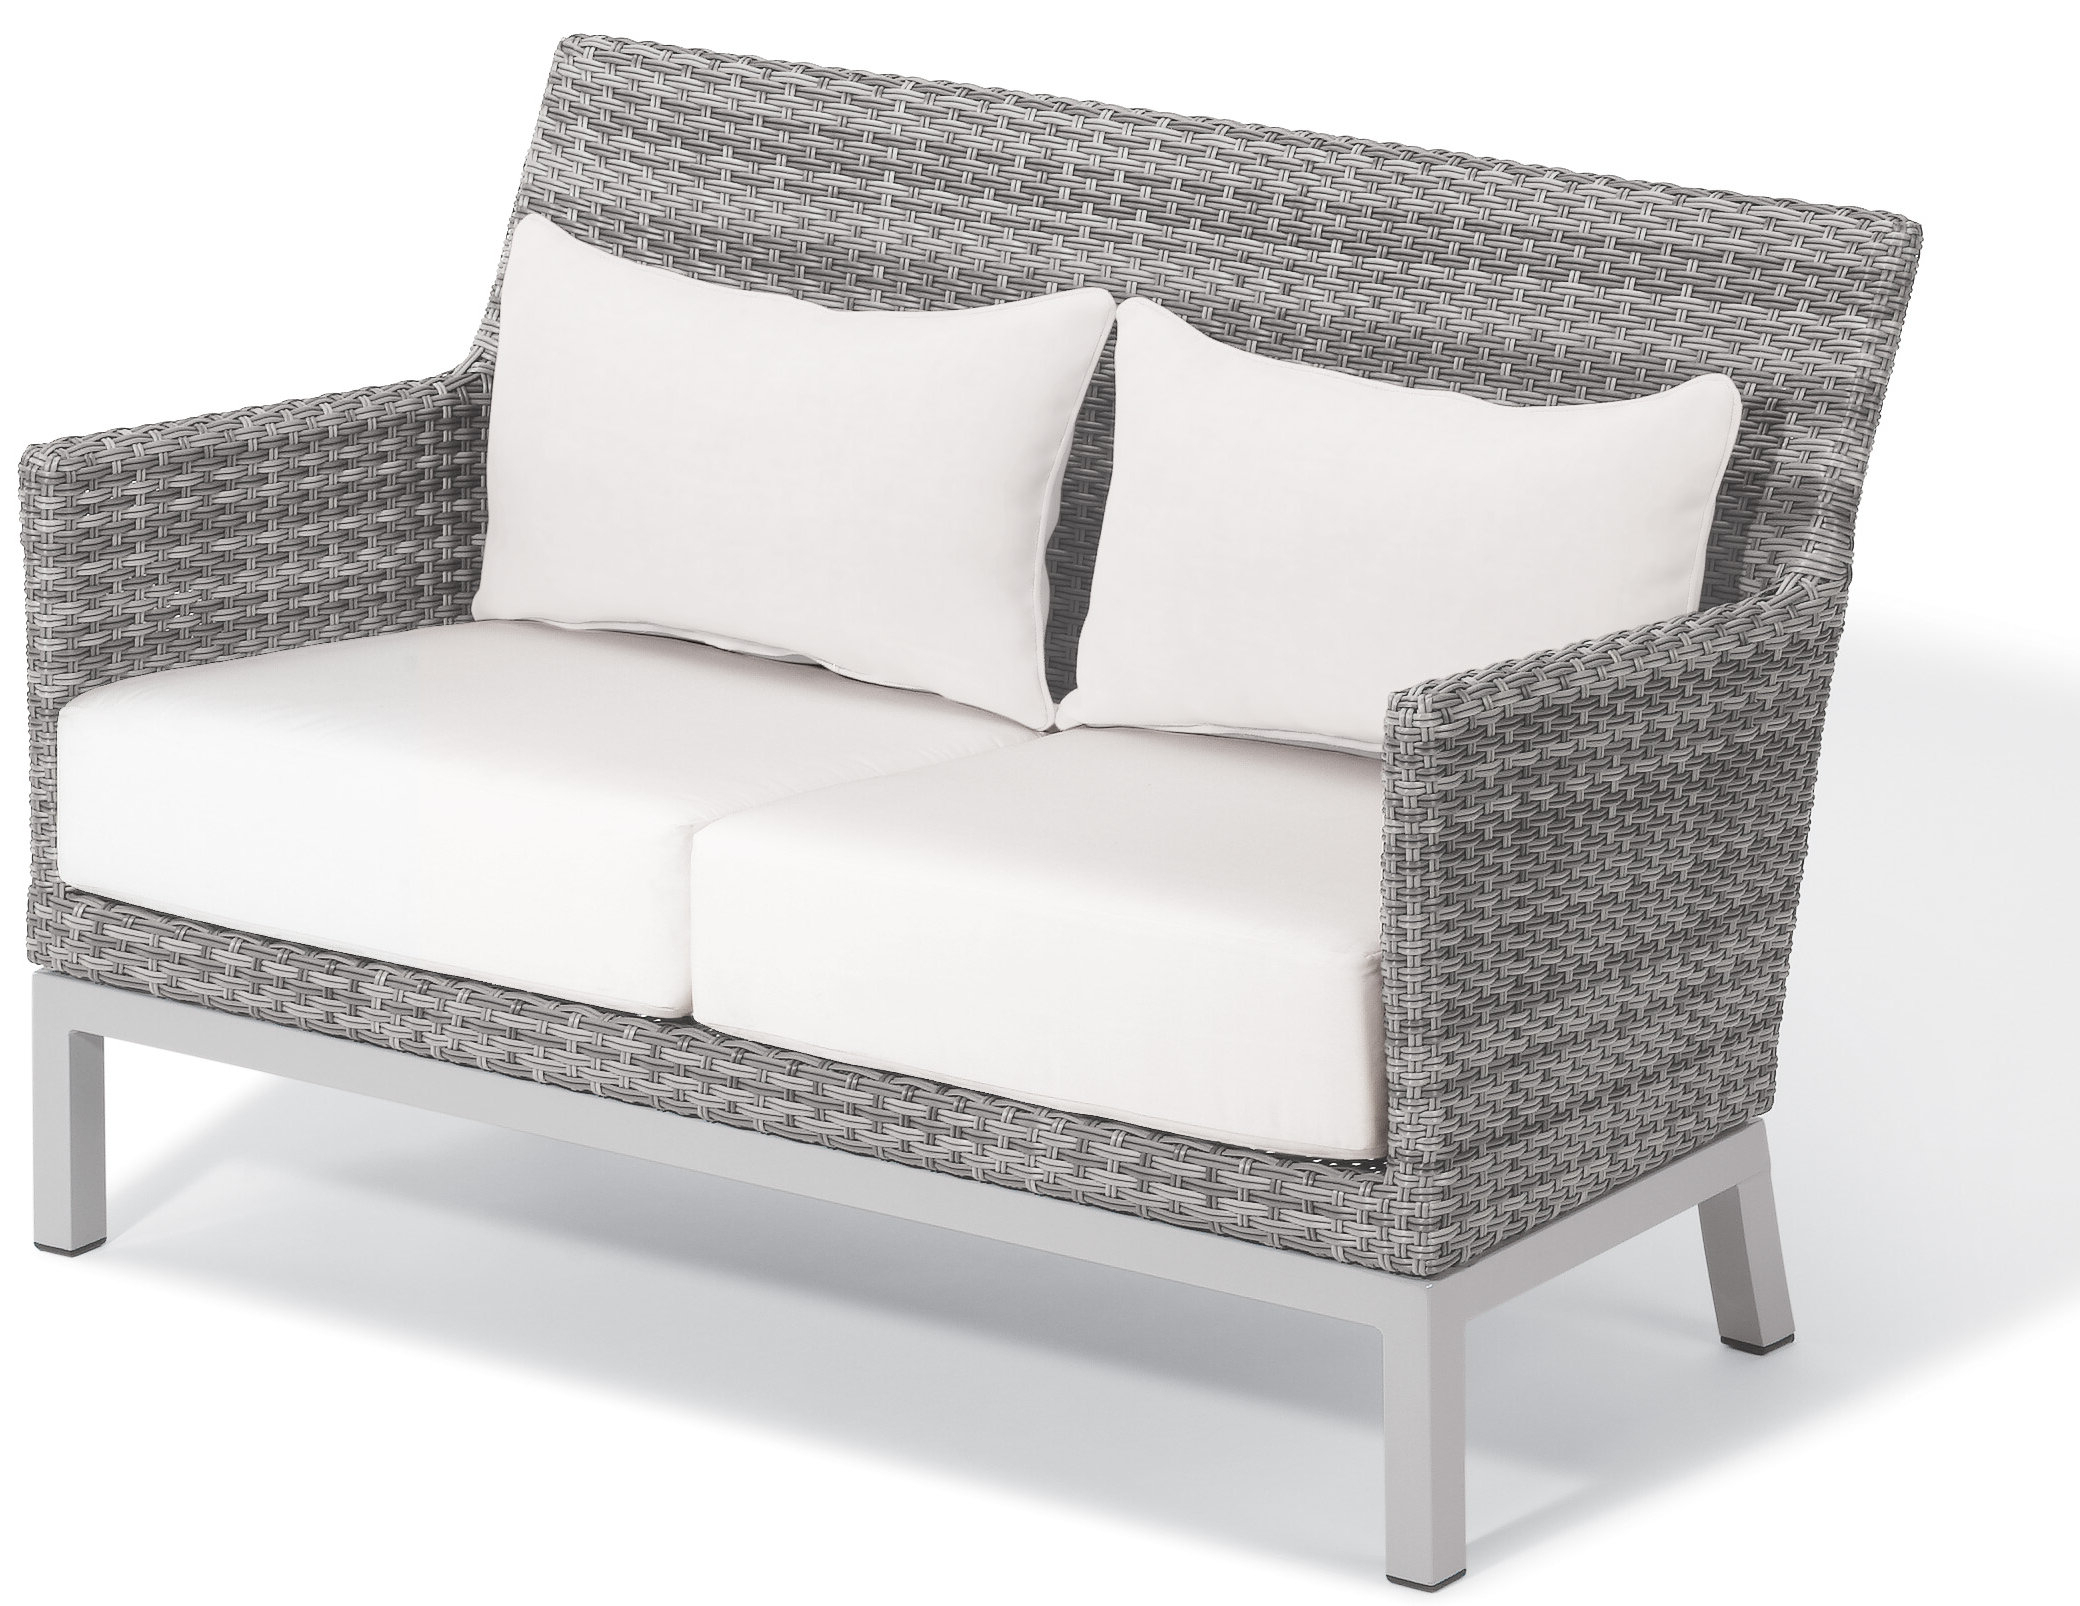 Saleem Loveseat With Cushions Regarding Recent Wakeland Wicker Loveseats With Cushions (View 7 of 25)